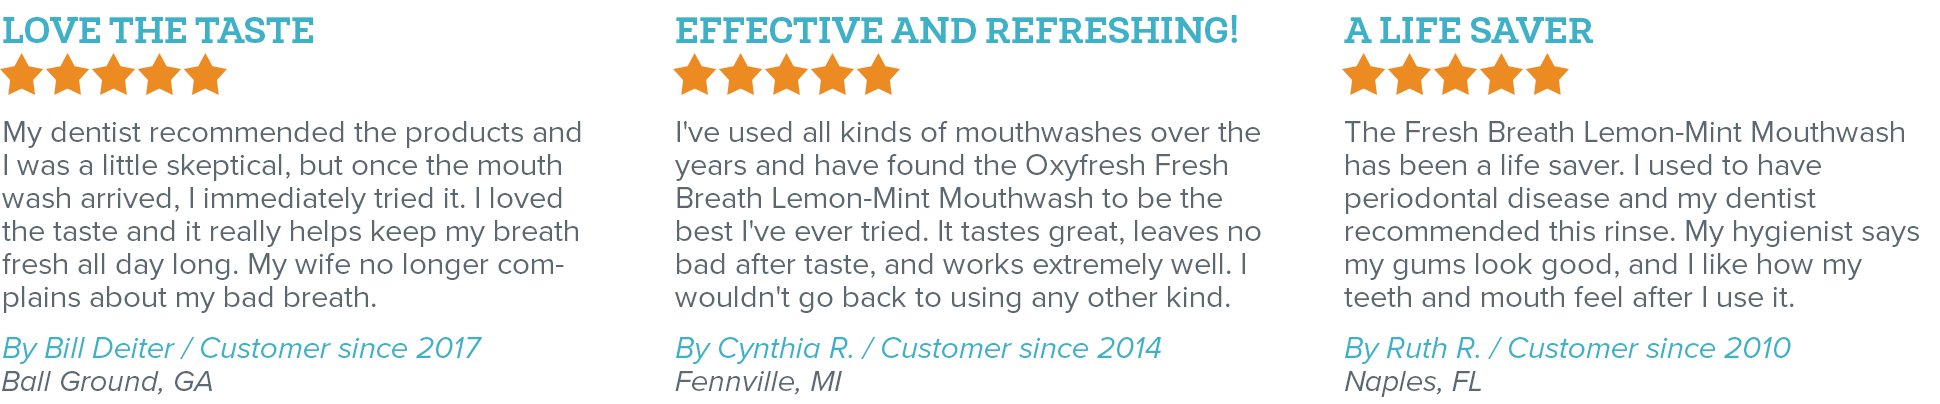 Oxyfresh - Eliminate Bad Breath - Pro Formula Cosmetic Fresh Mint Mouthwash Reviews